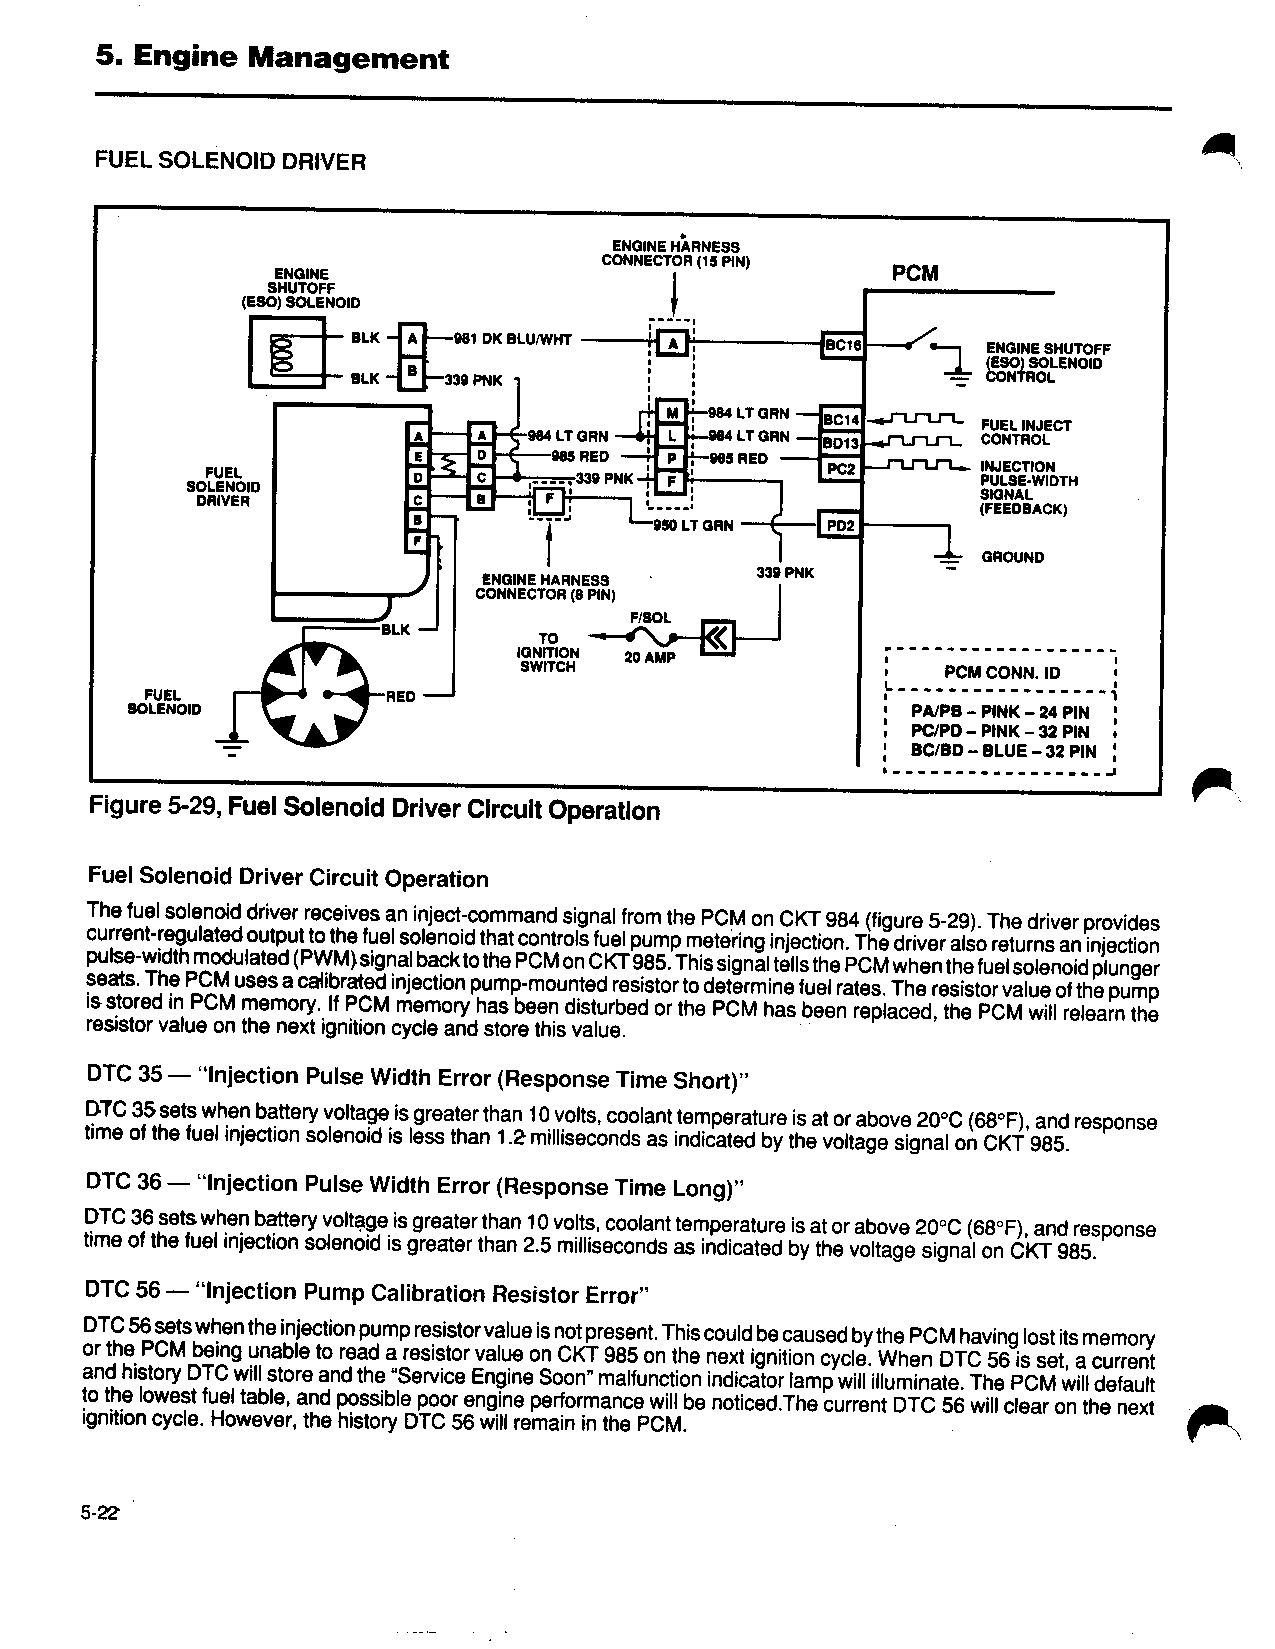 L E Mlps Wiring Diagram on 4t65e wiring diagram, cd4e wiring diagram, 4t40e wiring diagram, nv4500 wiring diagram, turbo 400 wiring diagram, 5r55s wiring diagram, 4x4 wiring diagram, 700r4 wiring diagram, transmission wiring diagram, 4l60e transmission, 6l90e wiring diagram, aode wiring diagram, neutral safety switch wiring diagram, harness wiring diagram, th350c wiring diagram, th350 wiring diagram, e4od wiring diagram, 4l80e wiring diagram, 5r110 wiring diagram, a604 wiring diagram,